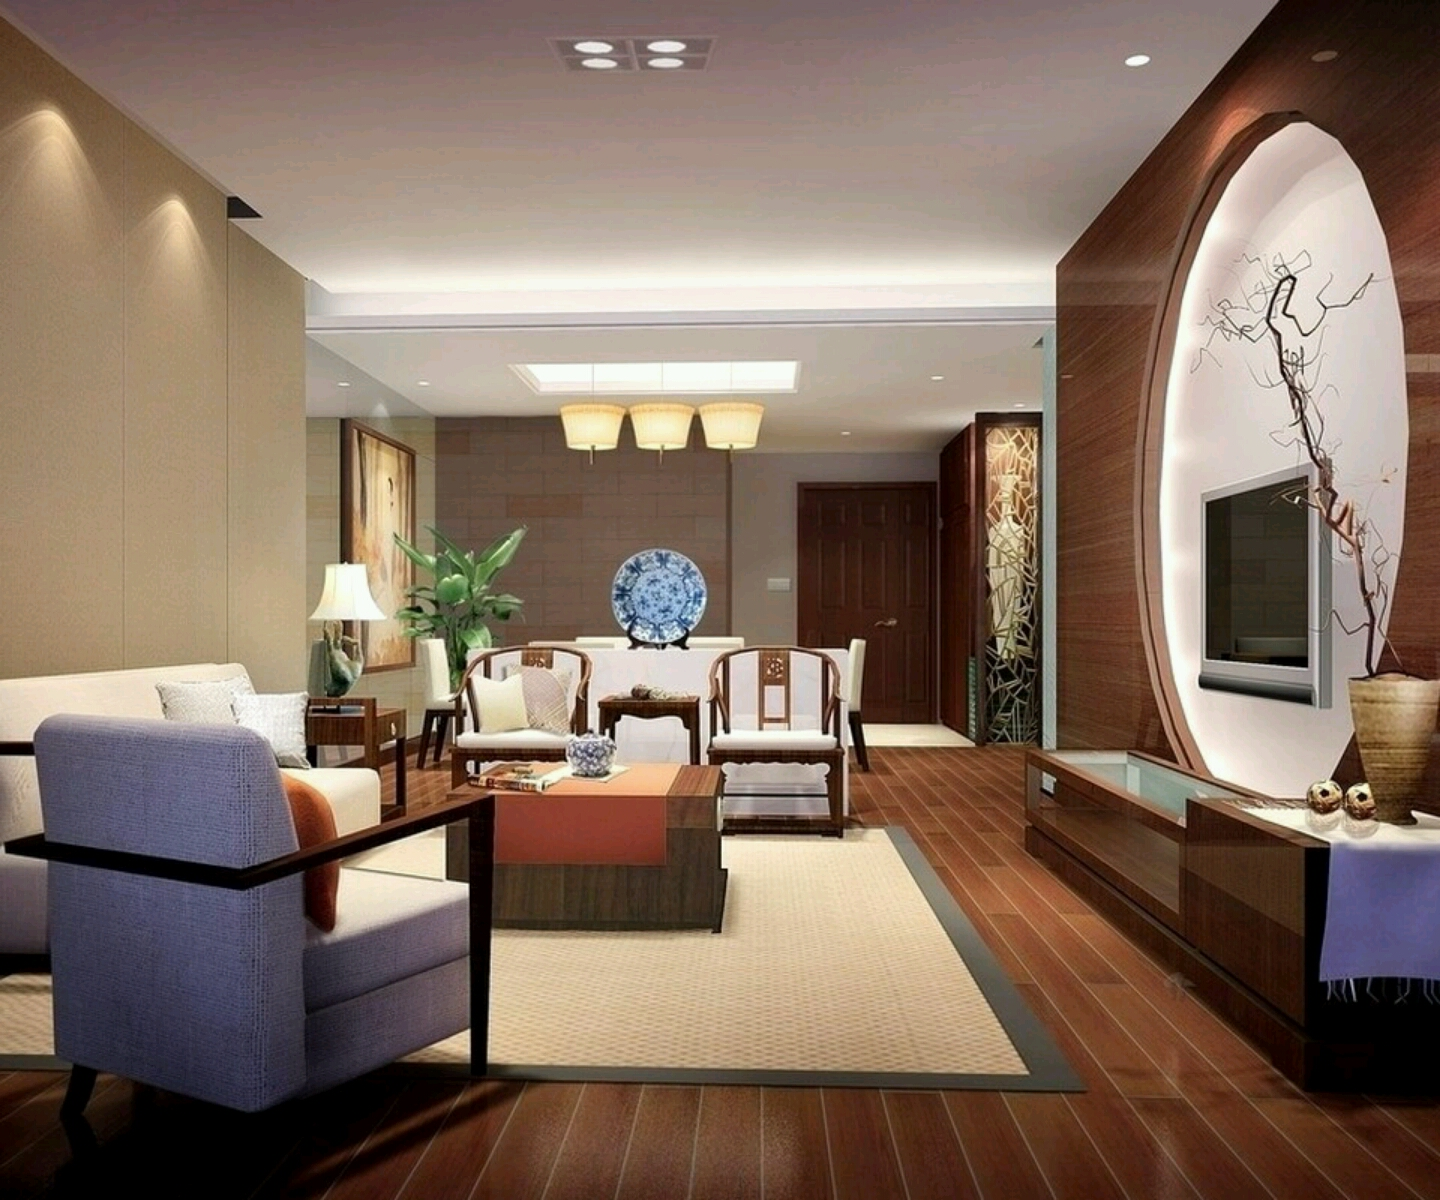 Luxury homes interior decoration living room designs ideas for Room design ideas in pakistan